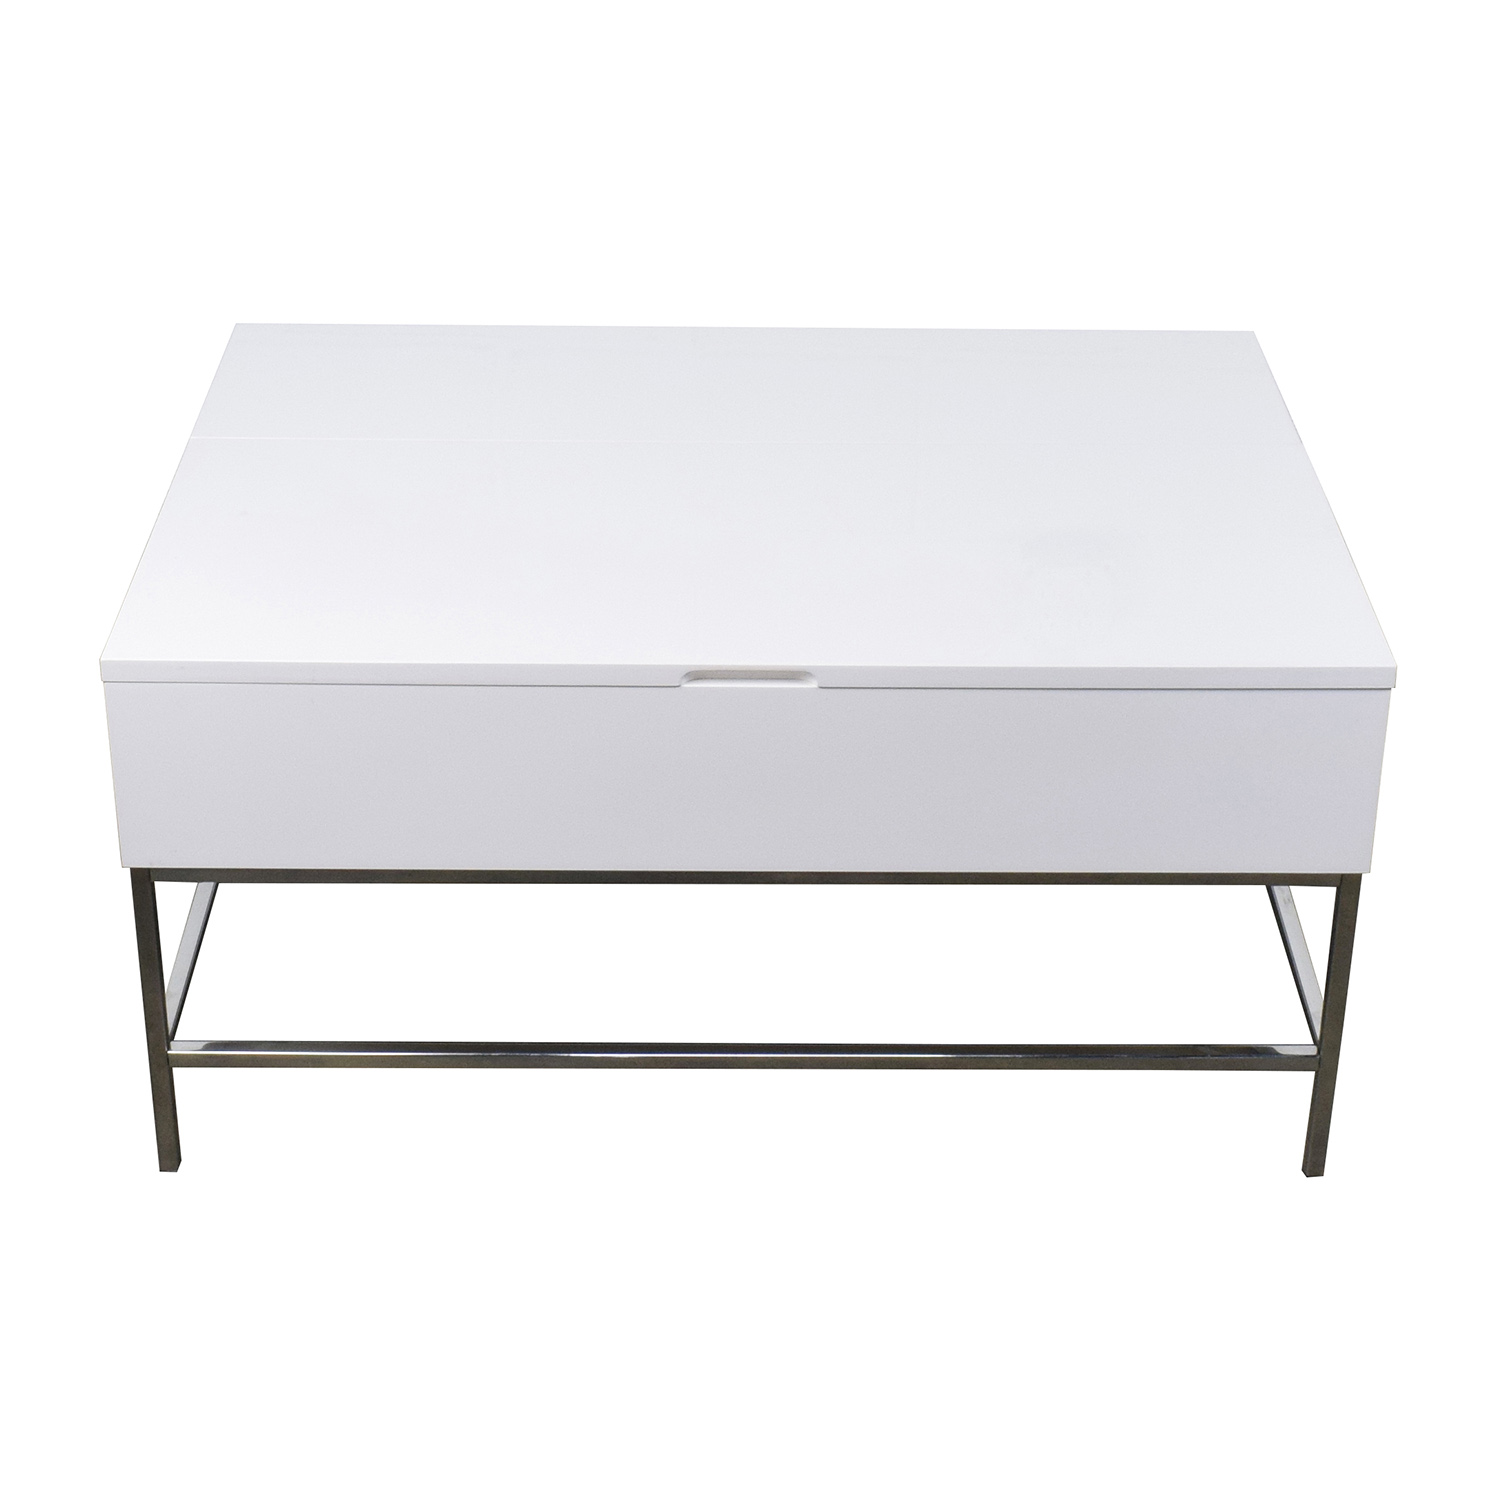 West Elm Storage Table West Elm White Lacquer Wood Coffee Table nj